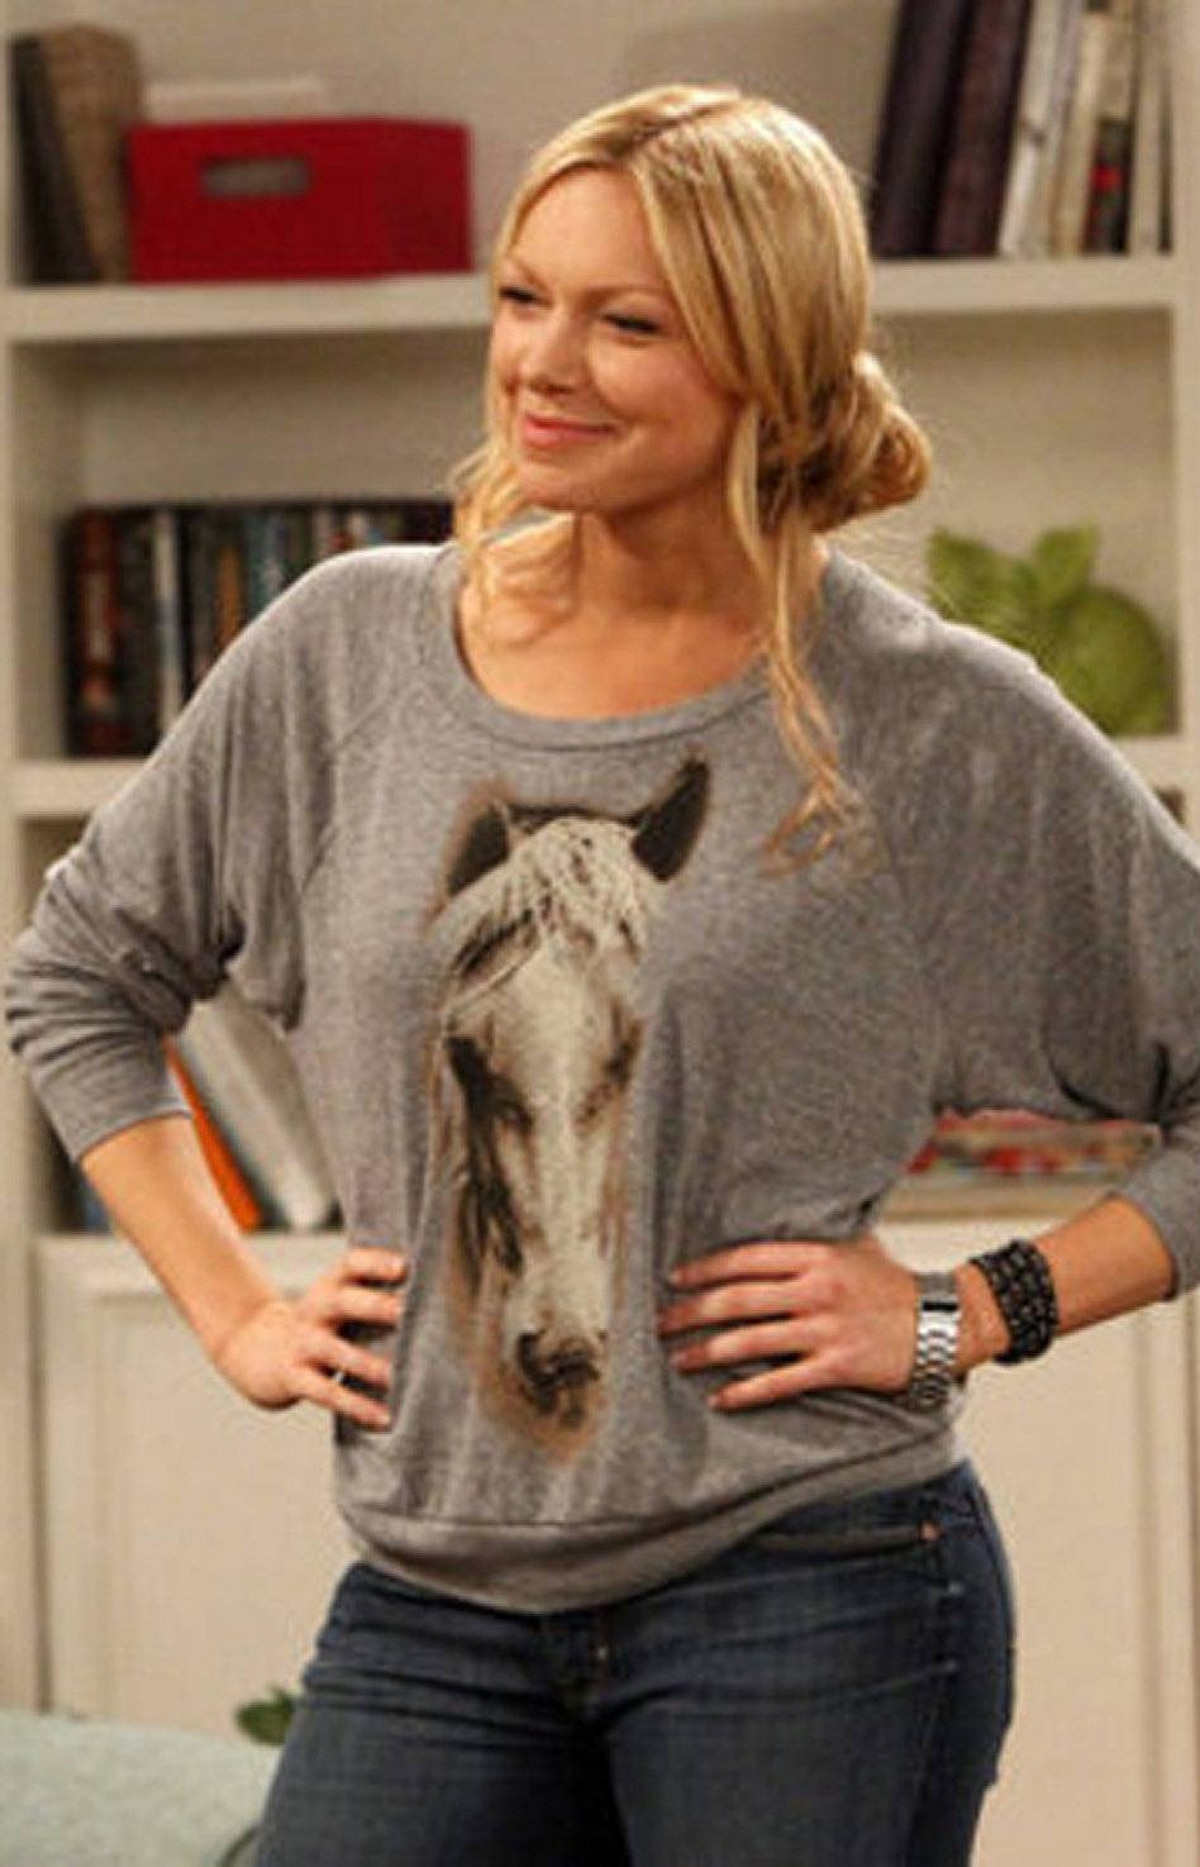 COMEDY Are You There, Chelsea? NBC, 8:30 p.m. Launched a few weeks back, this midseason sitcom is loosely based on Chelsea Handler's book about her misspent youth before she became a TV talk show host. In this version, the younger Chelsea is played by Laura Prepon, ex of That '70s Show, and she's one raunchy customer. Tonight, Chelsea finds herself inexplicably drawn to the young lead singer of a Christian rock band. Watch for the real Handler in a recurring support role as Chelsea's priggish older sister.